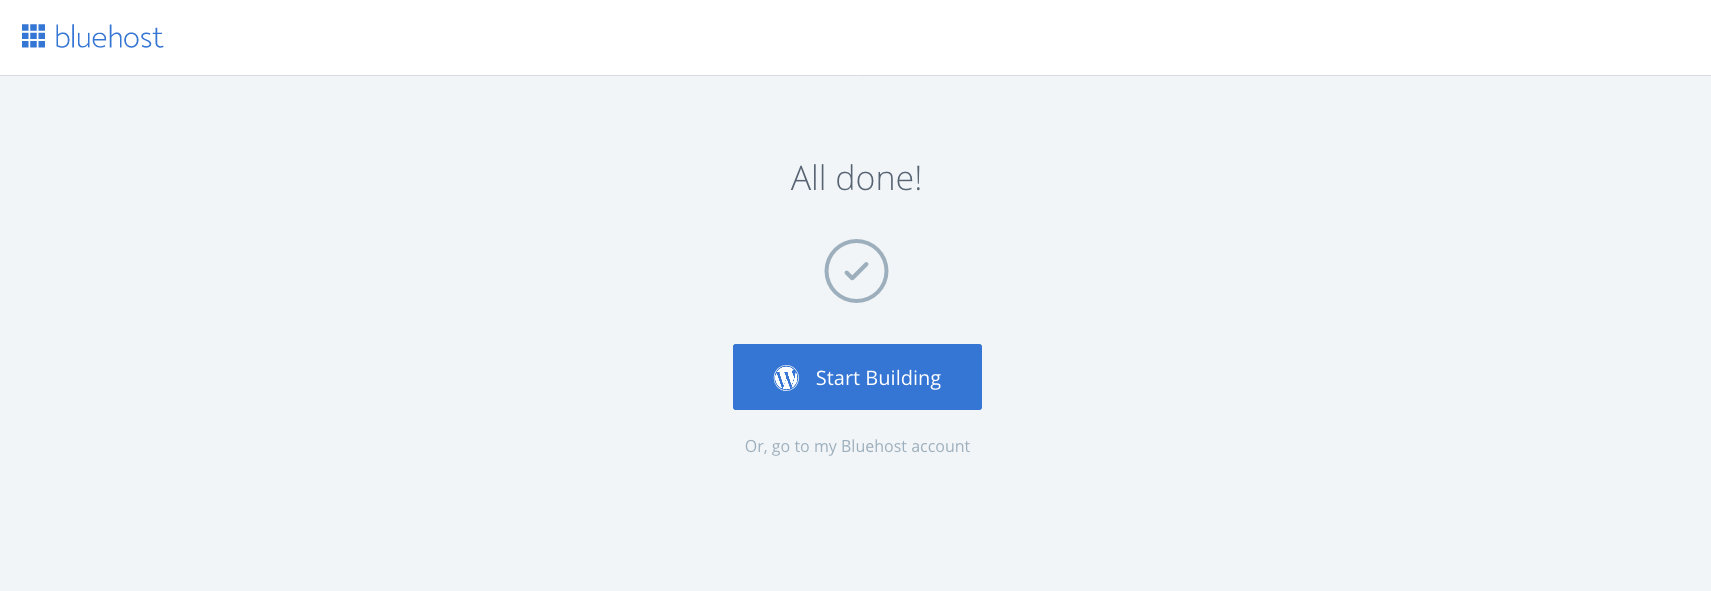 Bluehost Pick Theme2